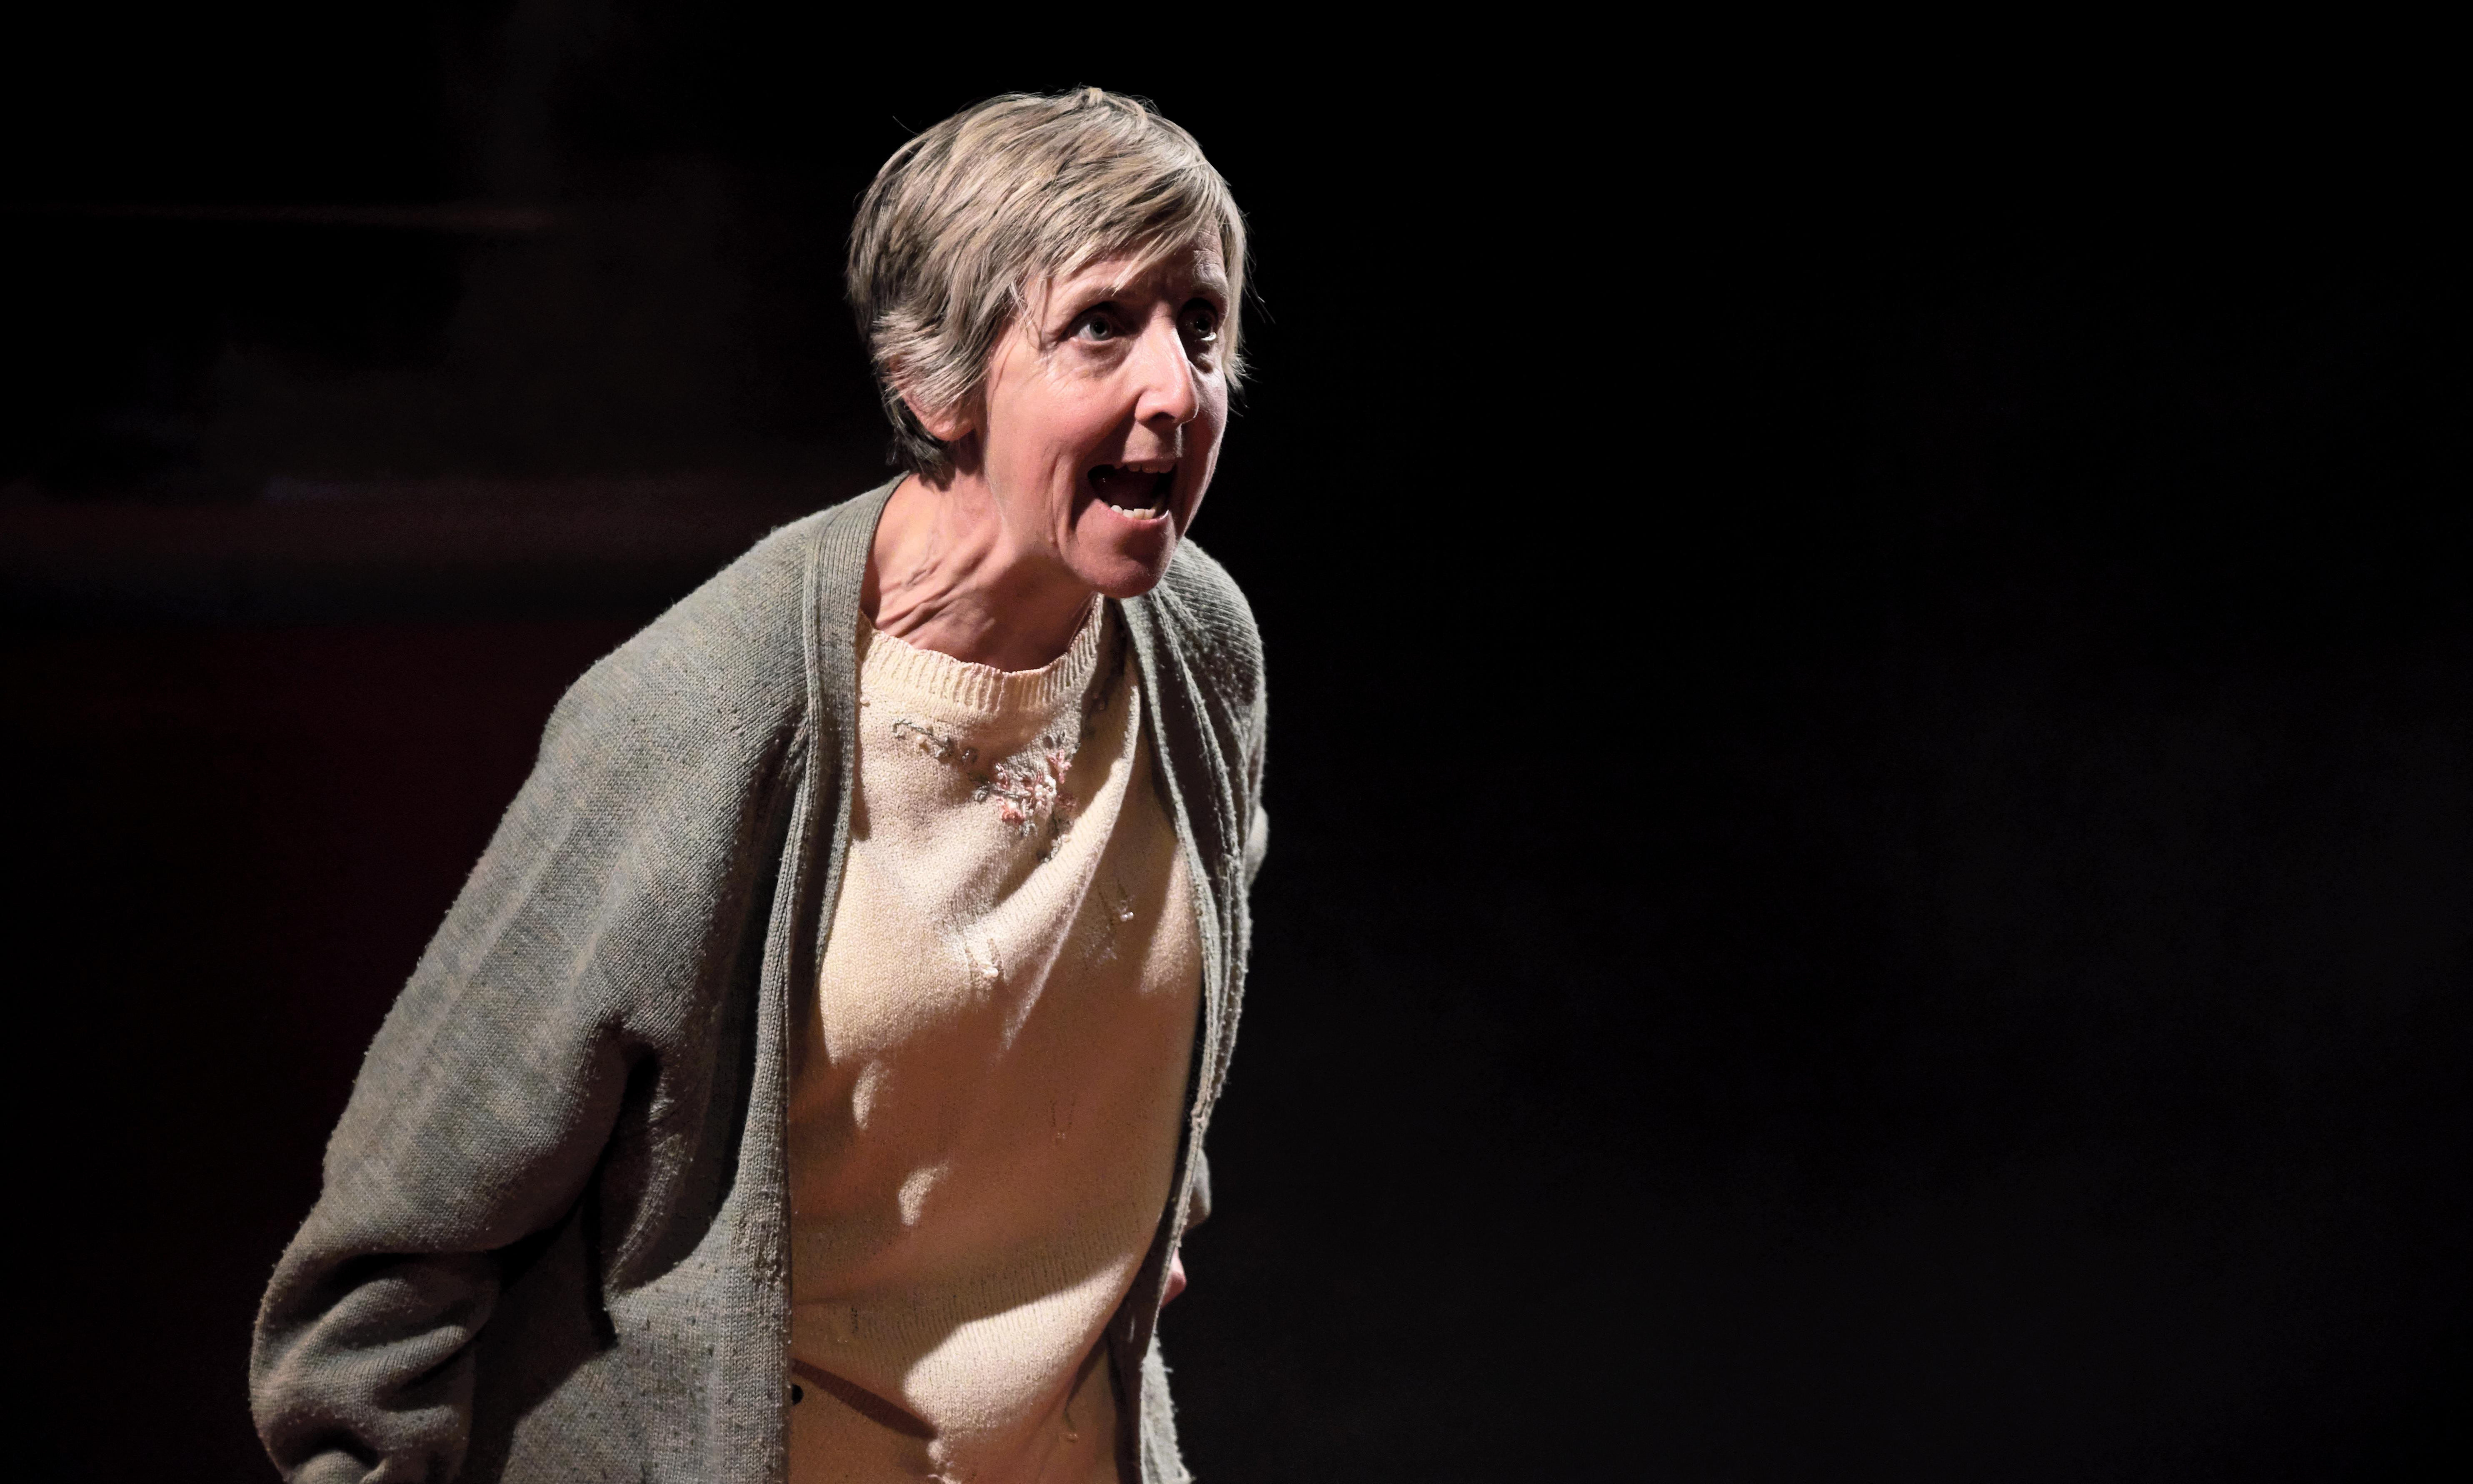 There Are No Beginnings review – Yorkshire Ripper drama reclaims female narrative